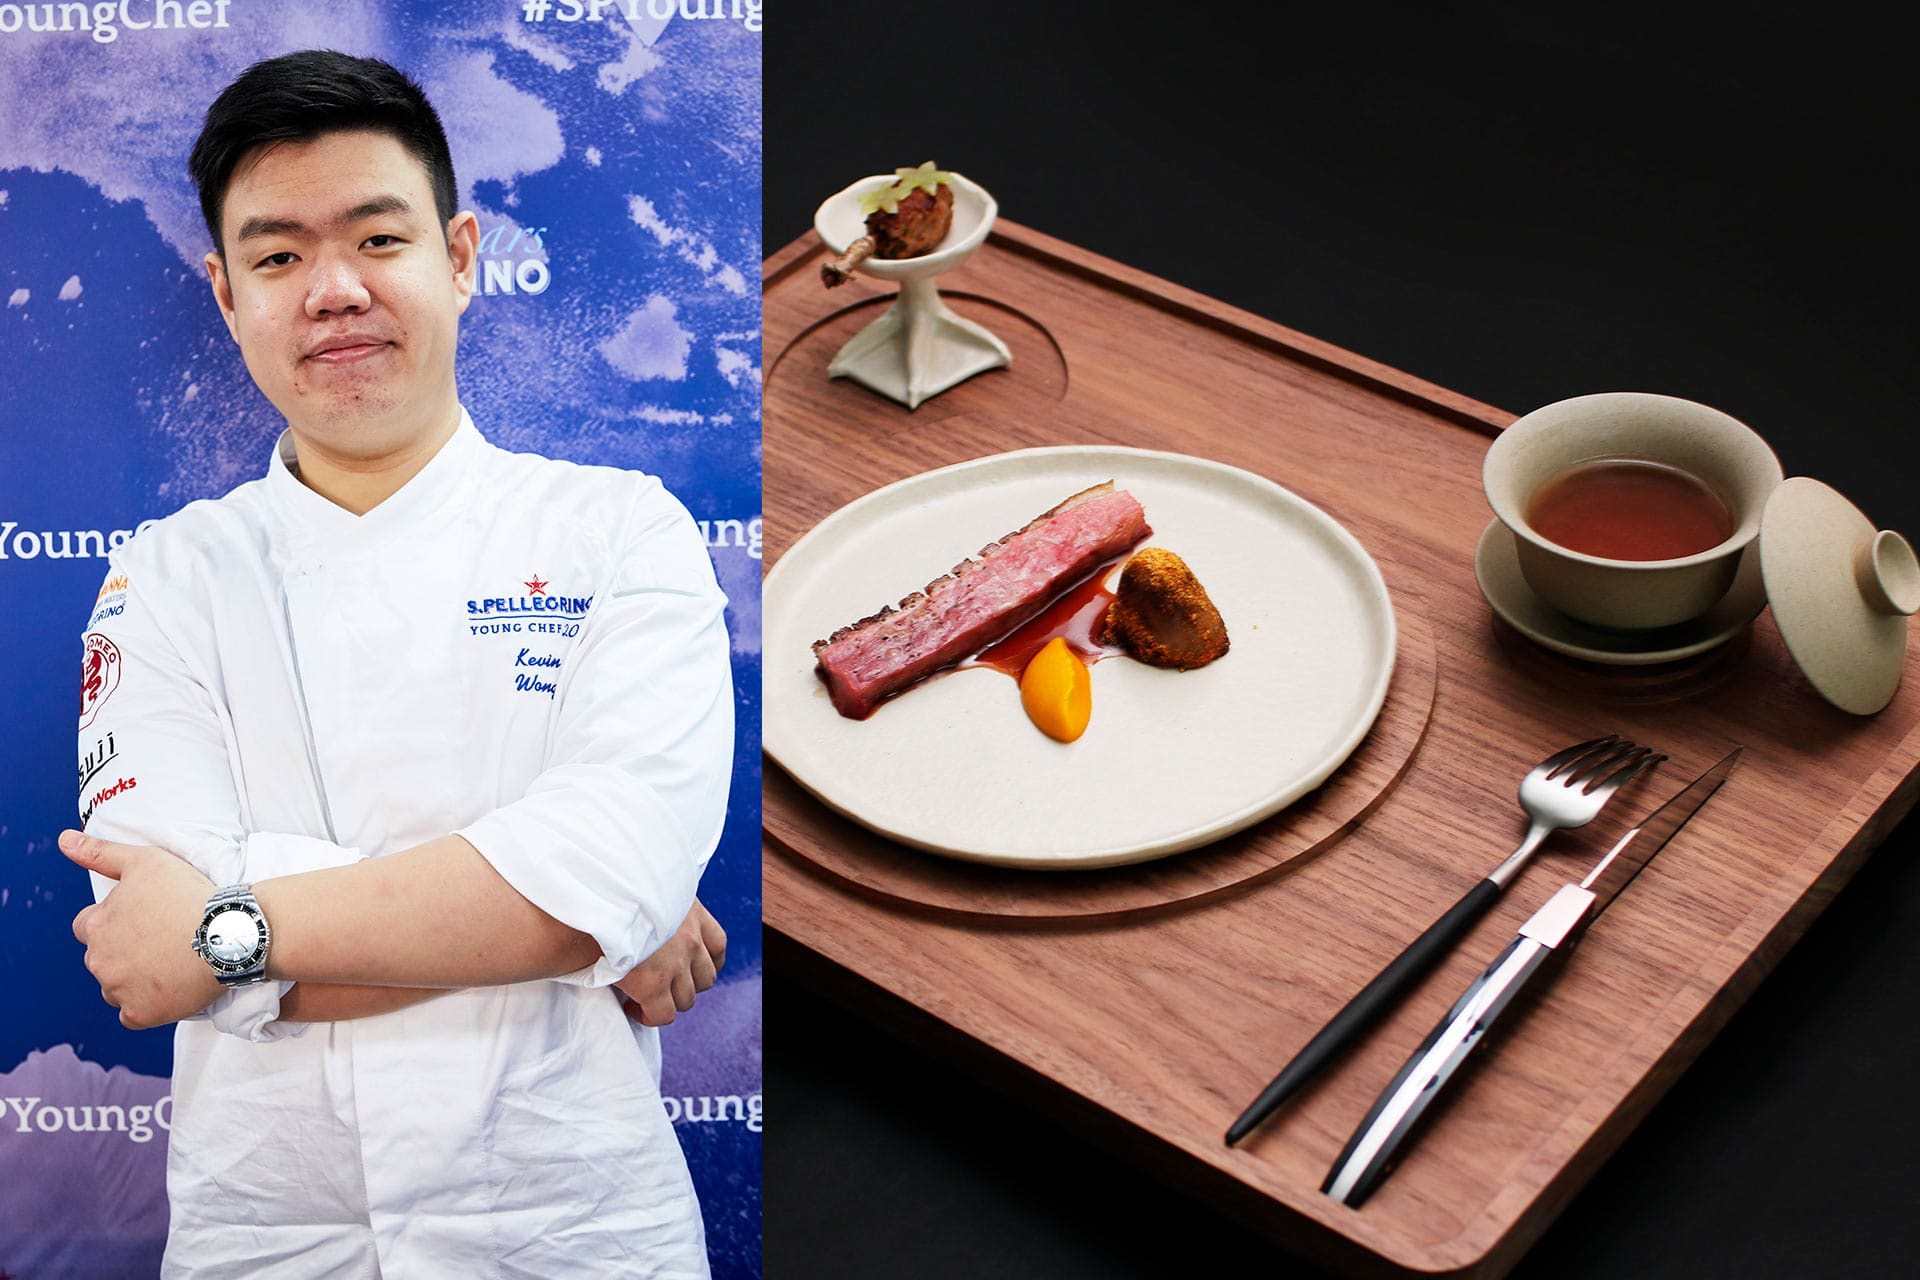 Kevin Wong_S.Pellegrino Young Chef Asia Winner 2019